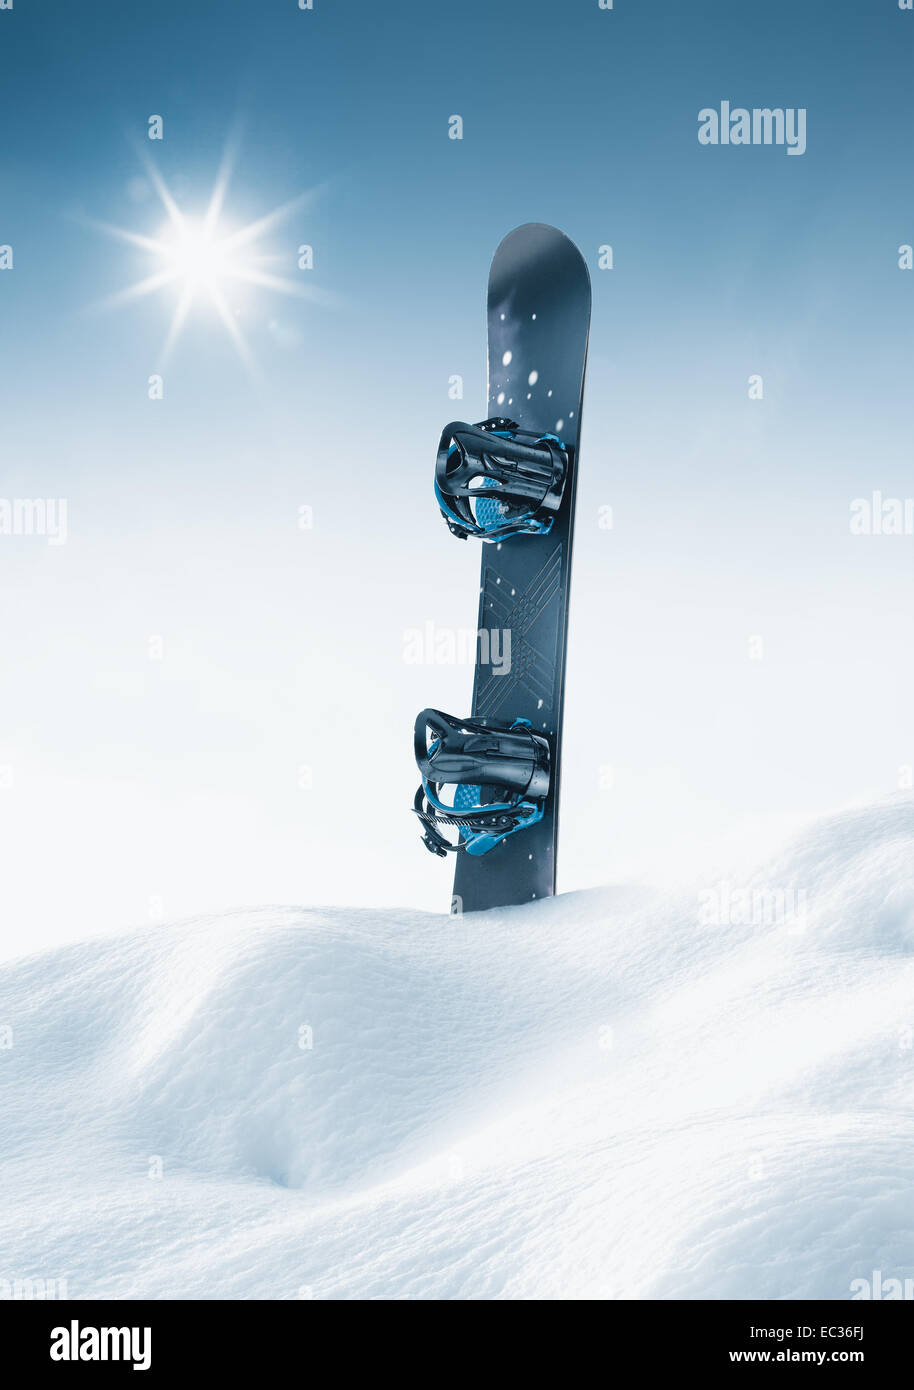 view of nice blue snowboard in winter environment - Stock Image